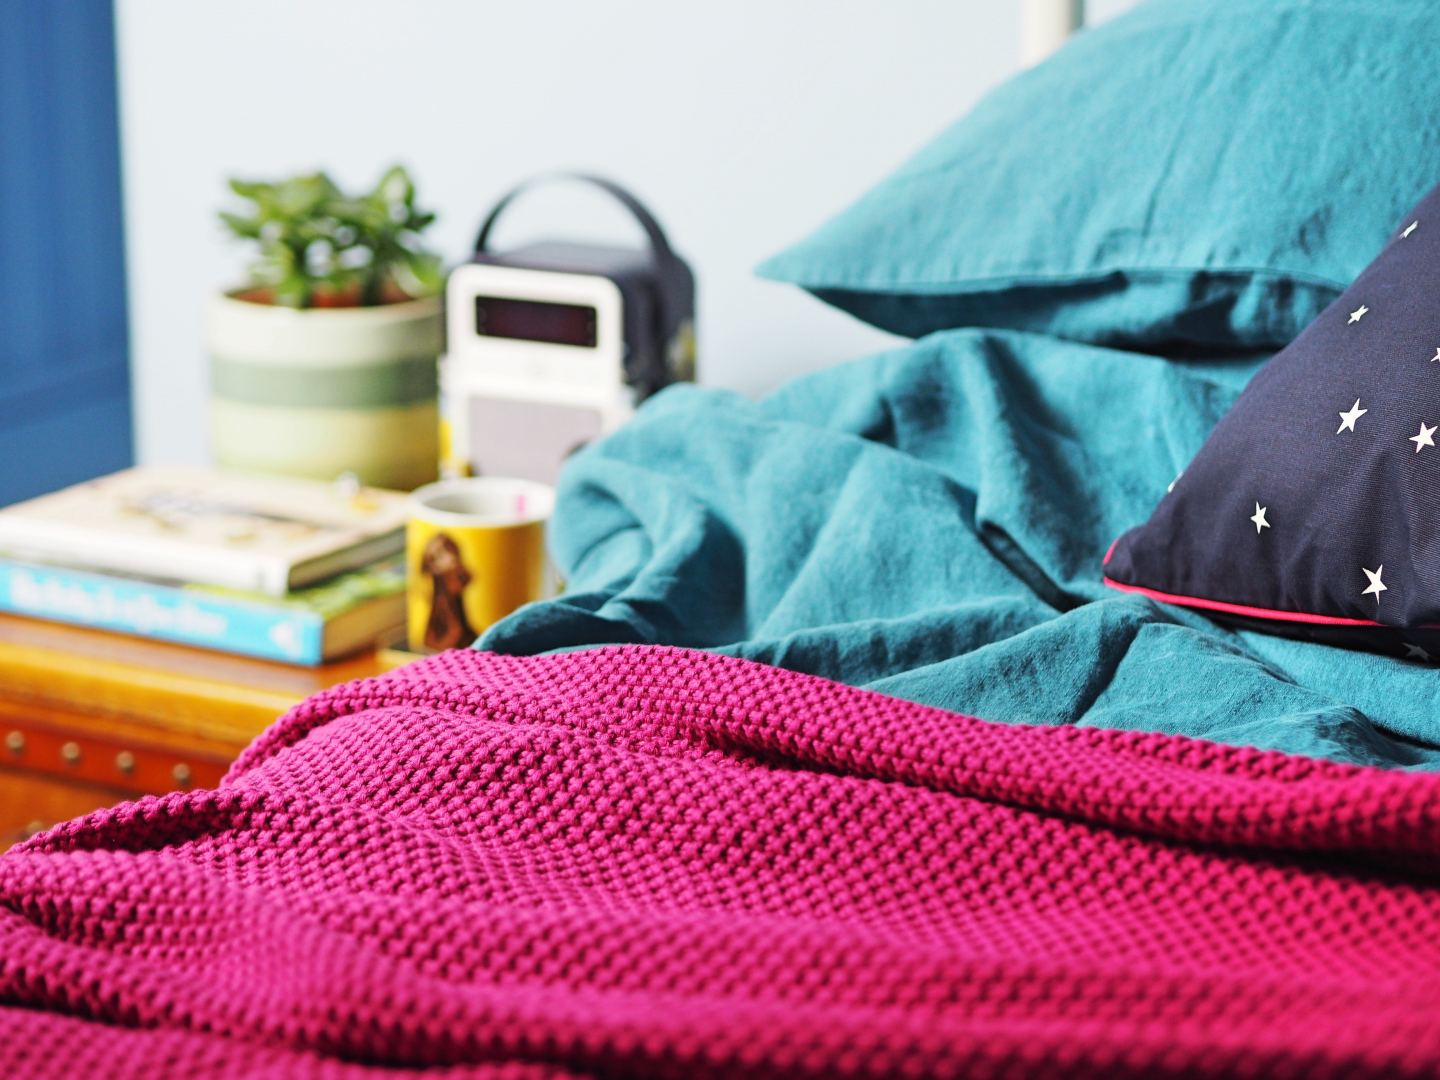 VQ X Joules radio and loaf linen bedding